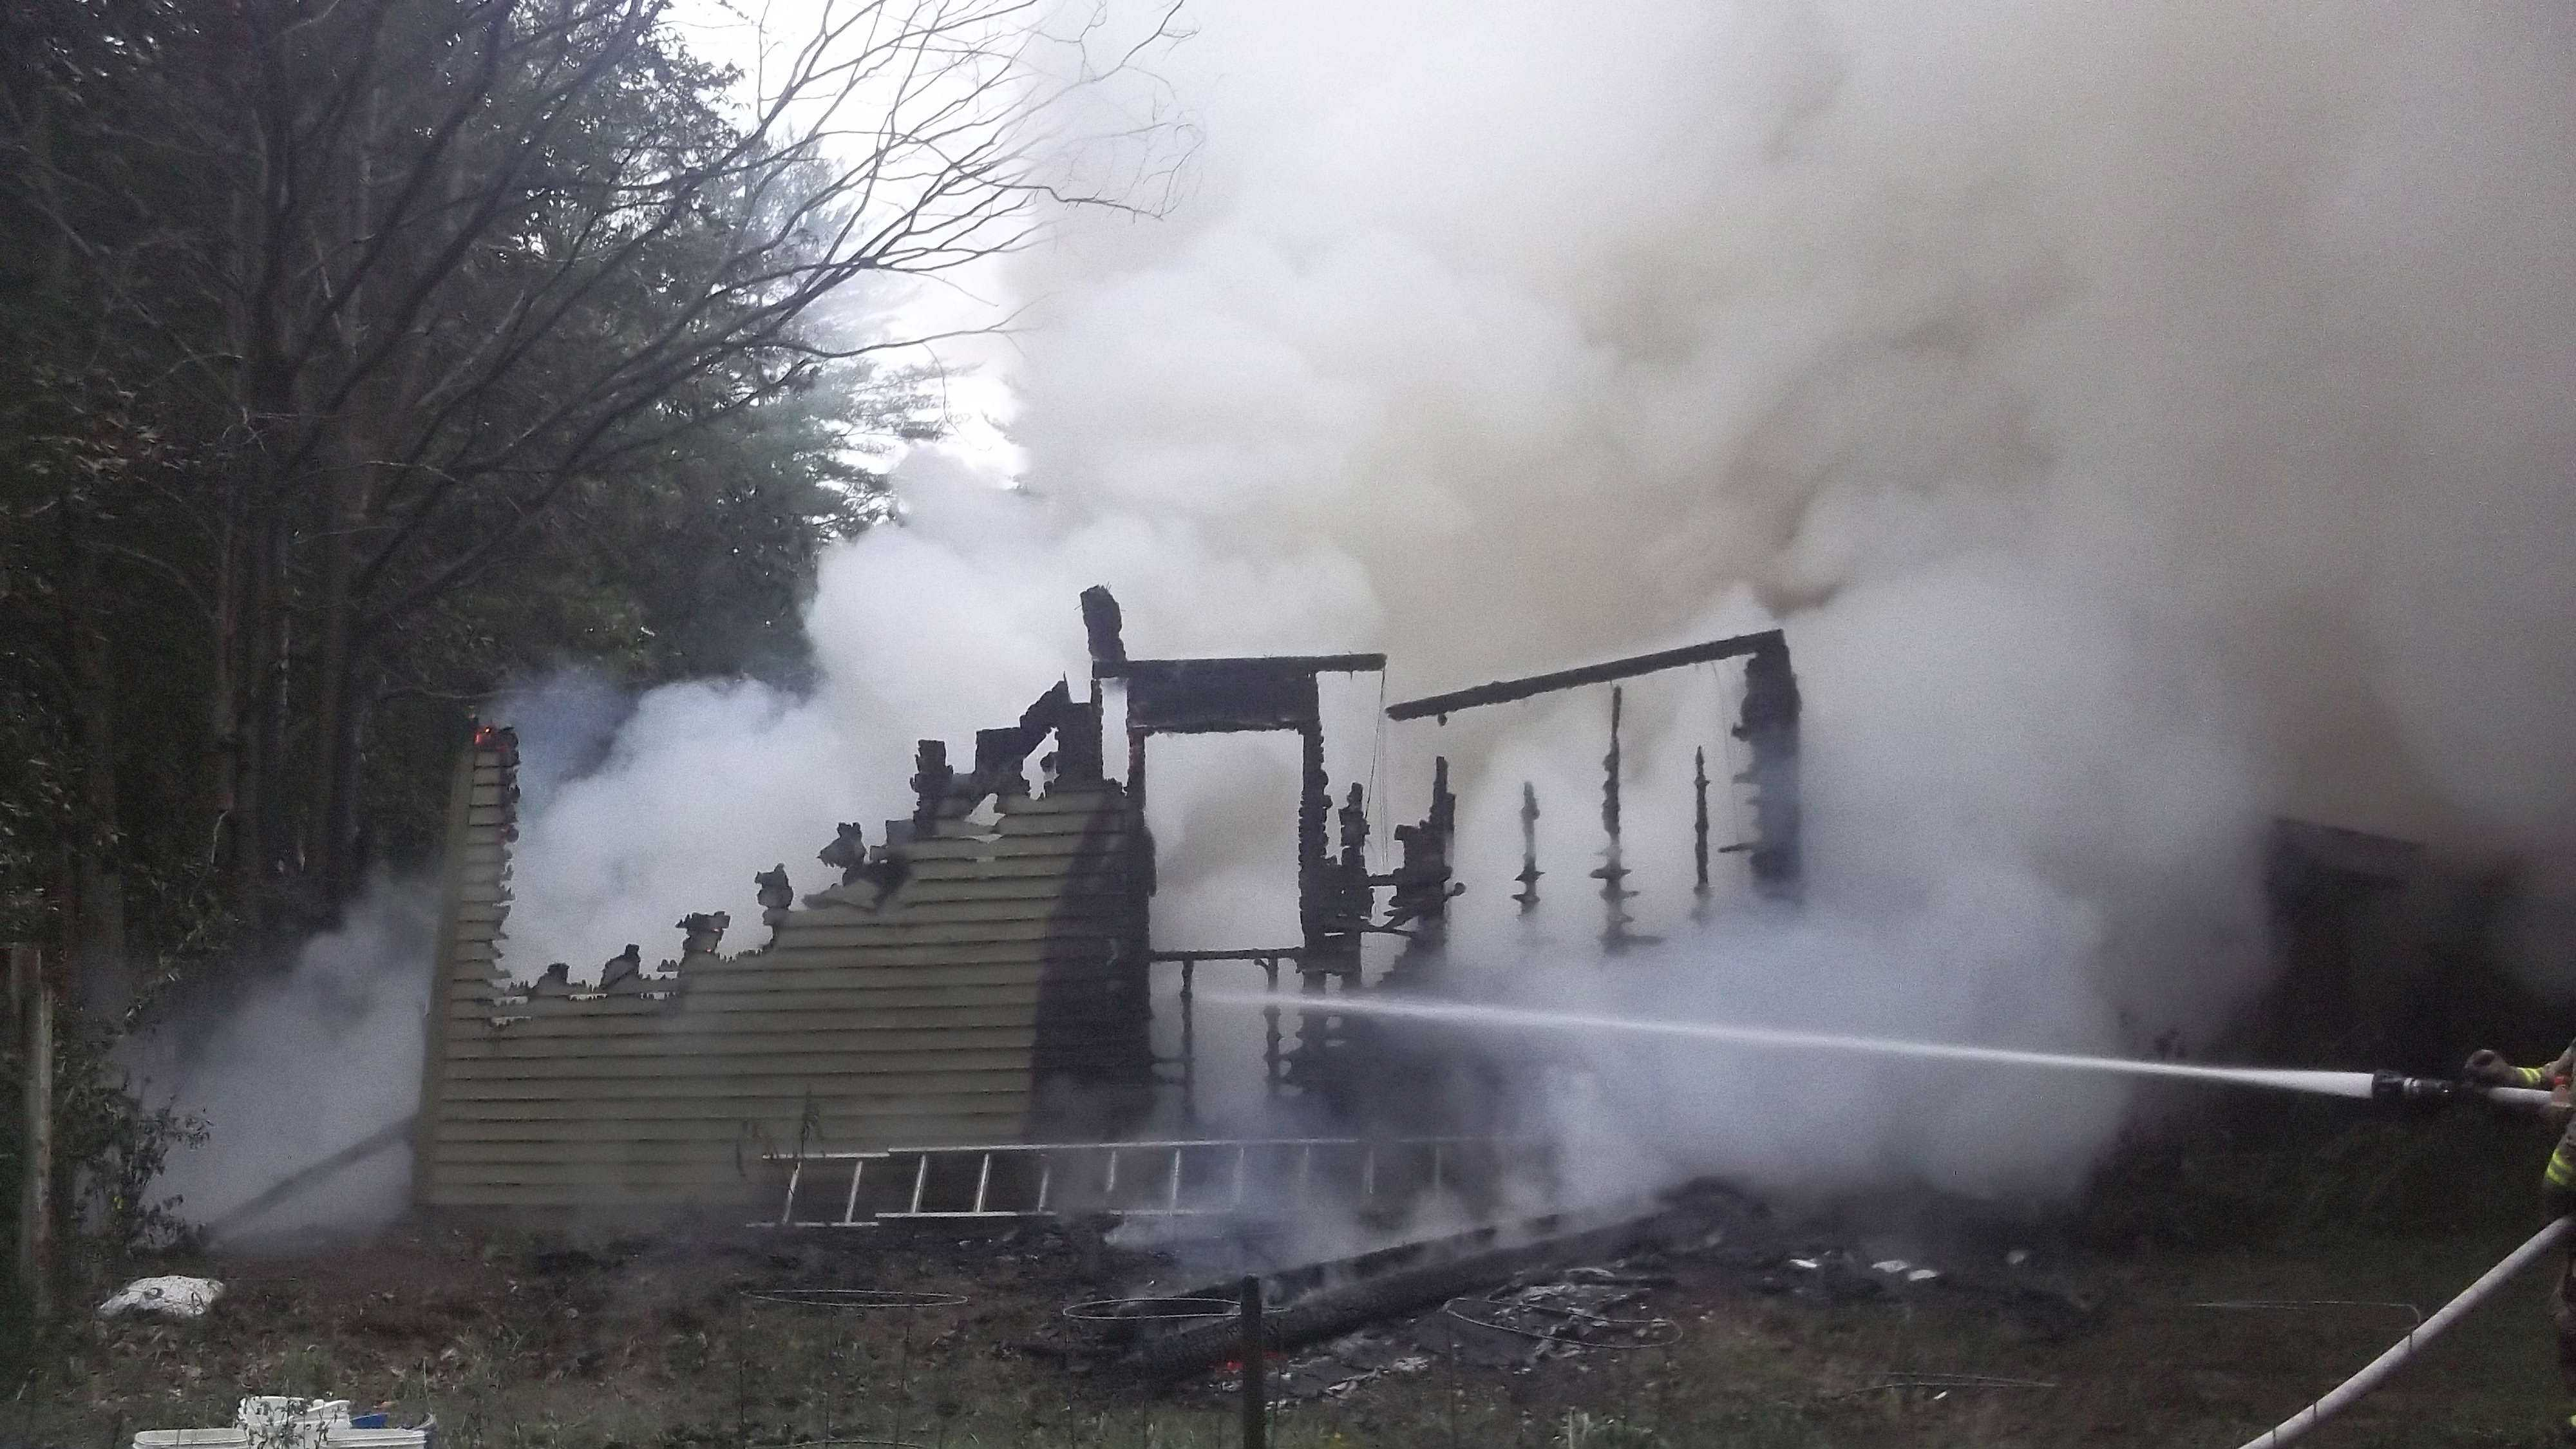 img-Lee possible arson